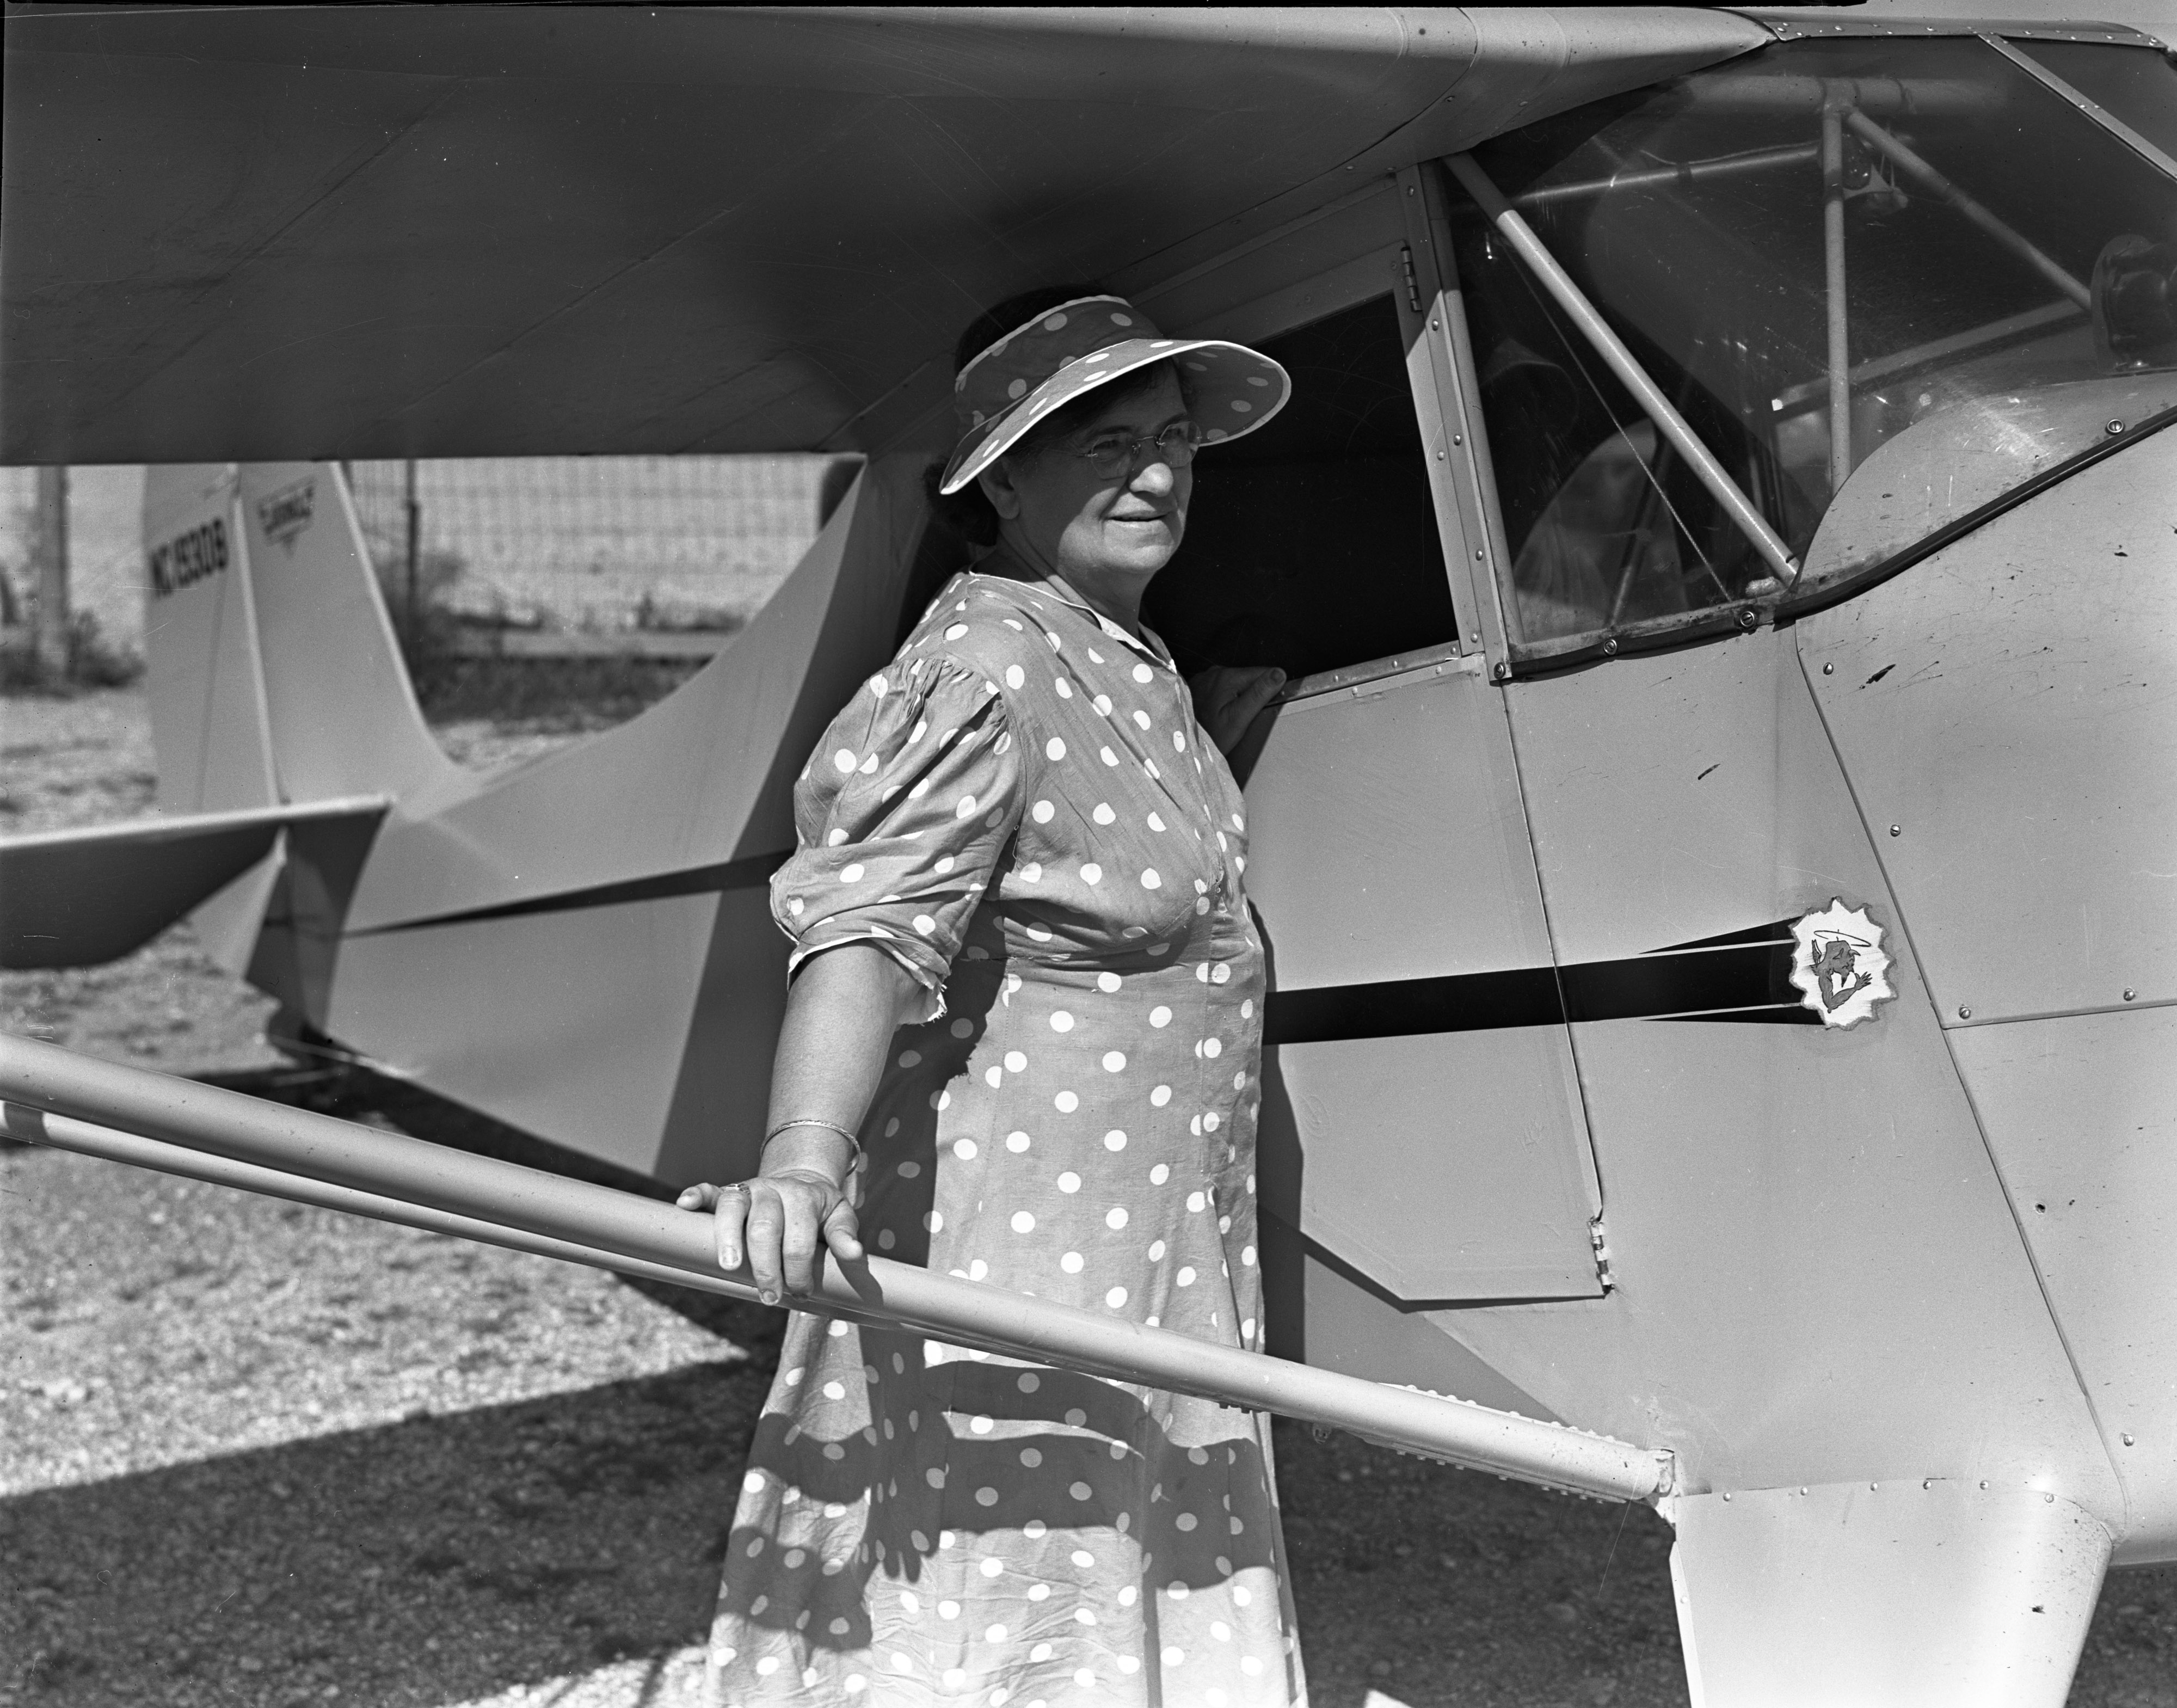 Mrs. Carl Rufus and her Cub 65 Plane image